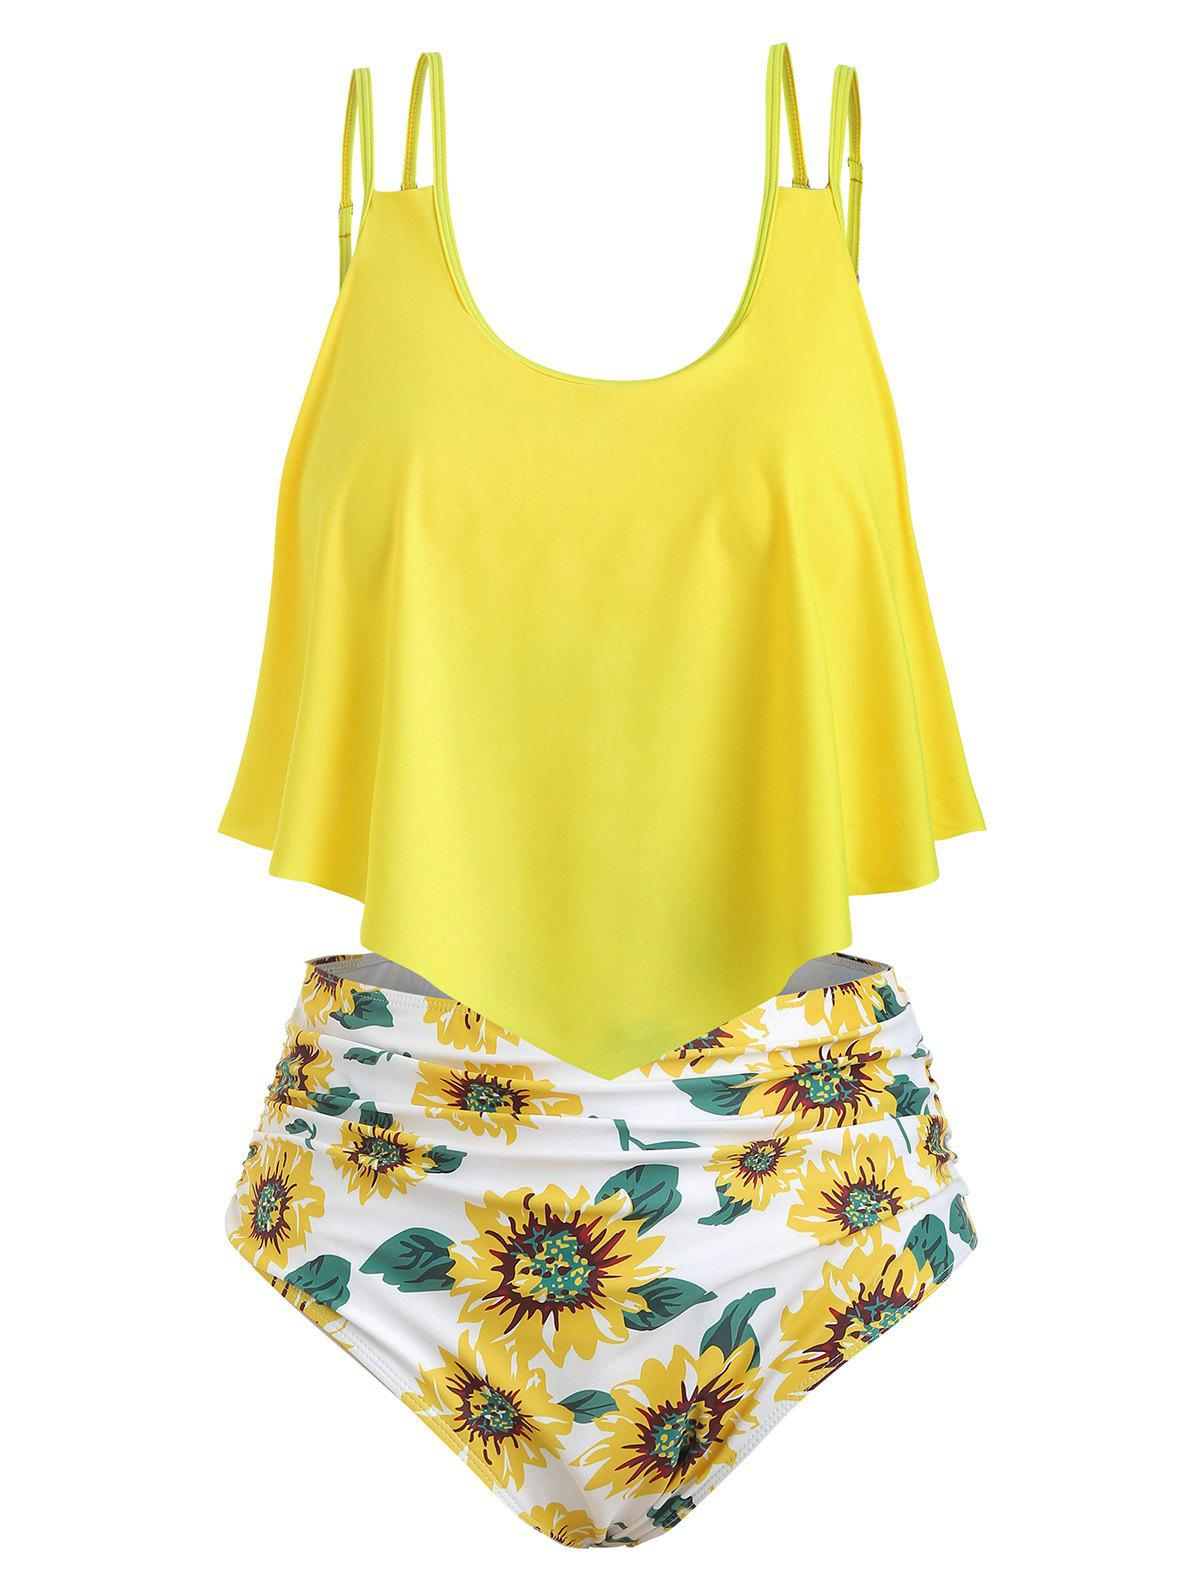 Sunflower Contrast Overlay Plus Size Tankini Set - YELLOW M